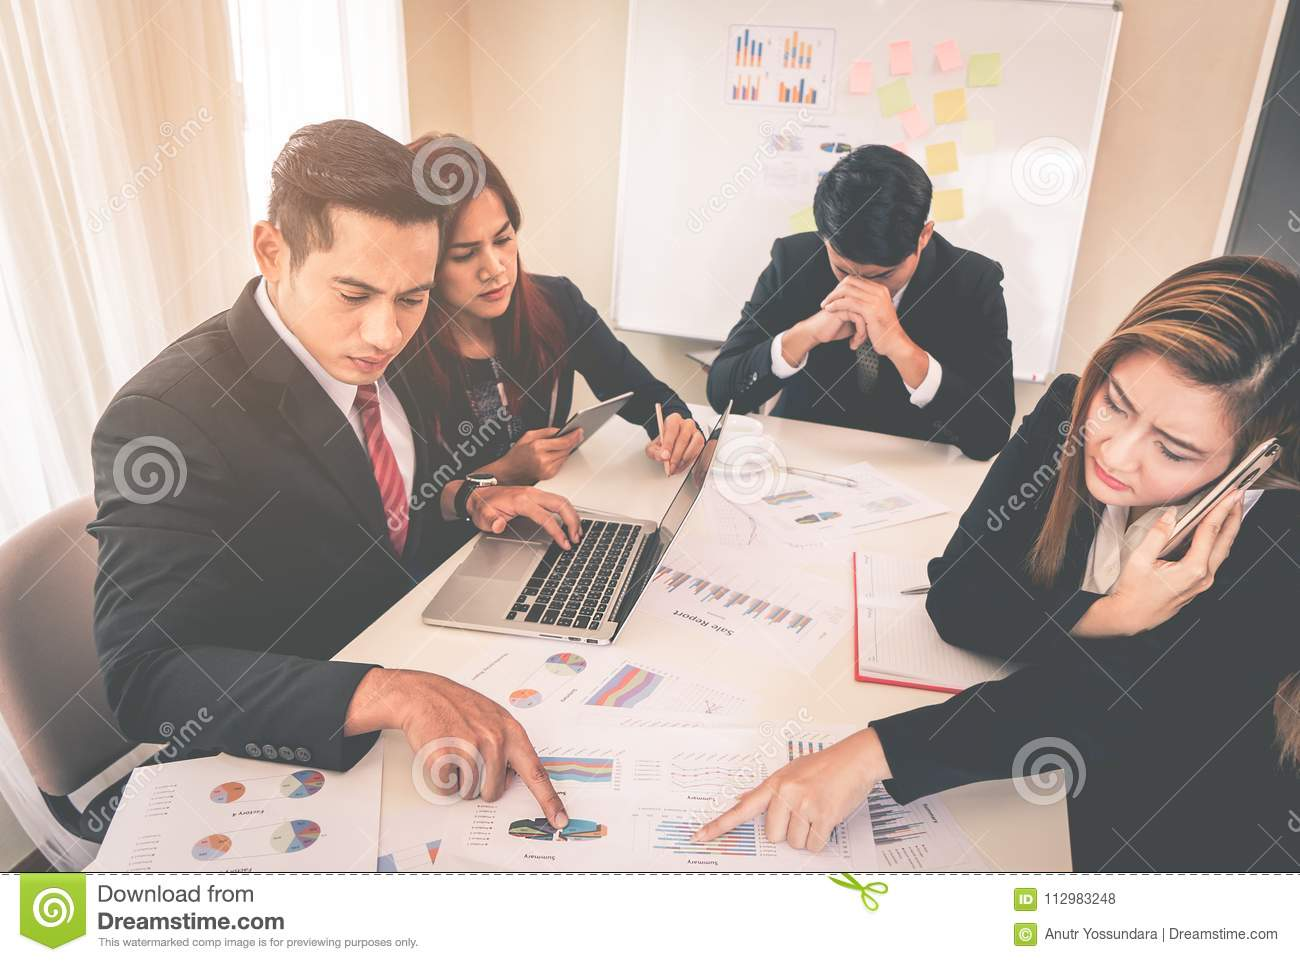 Business team in meeting stressed out with meeting performance